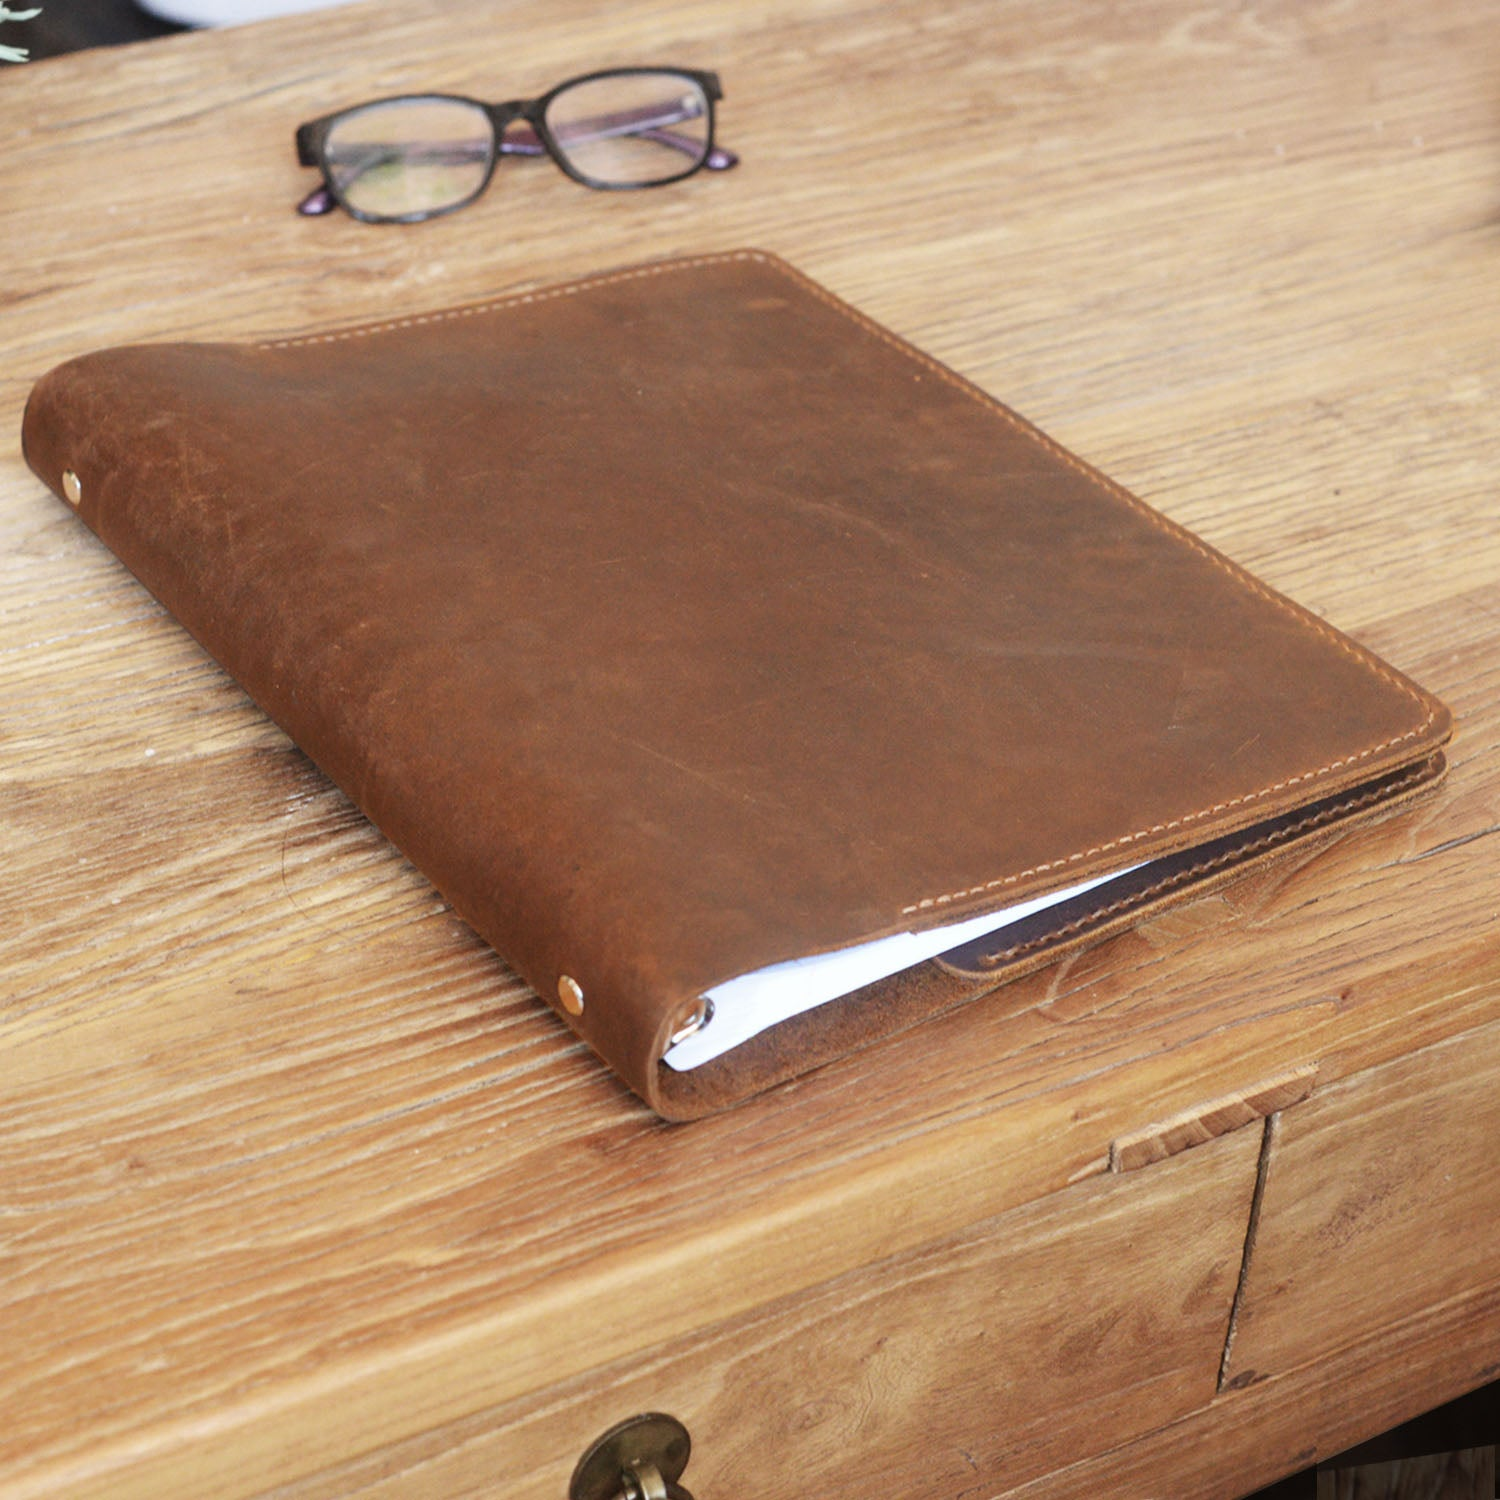 Leather Binder 3-Ring, Fit 3 Hole 8.5 X 11 Refill Paper Or